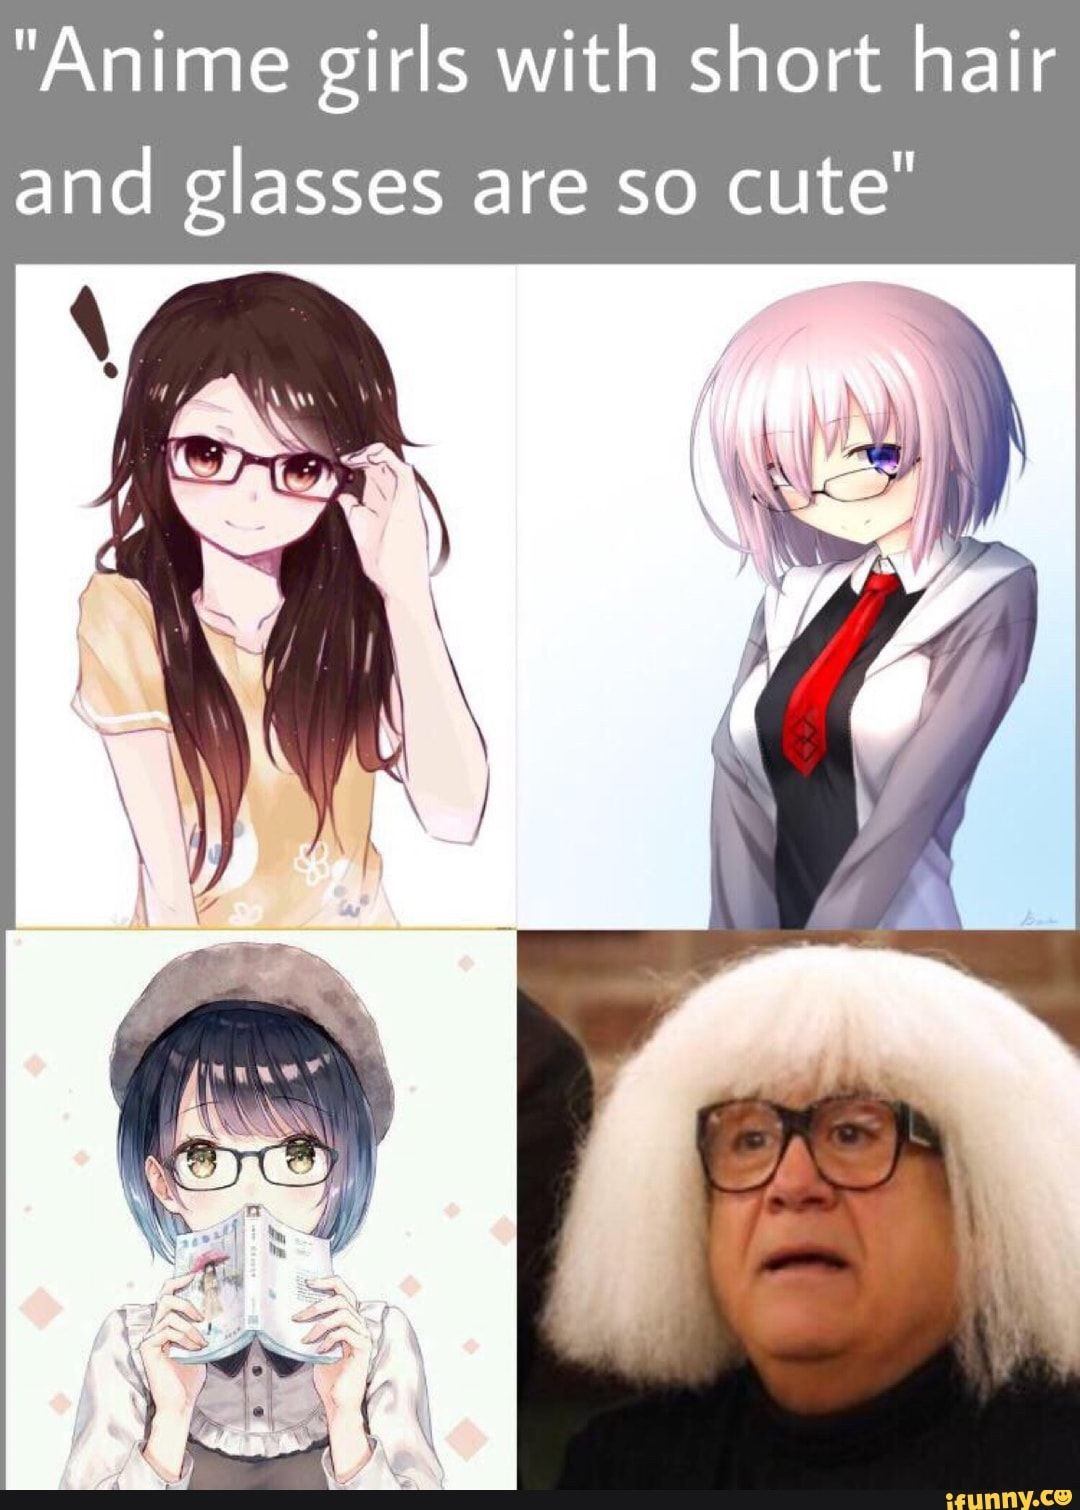 Anime Girls With Short Hair And Glasses Are So Cute Ifunny Funny Meme Pictures Meme Pictures Funny Memes About Girls